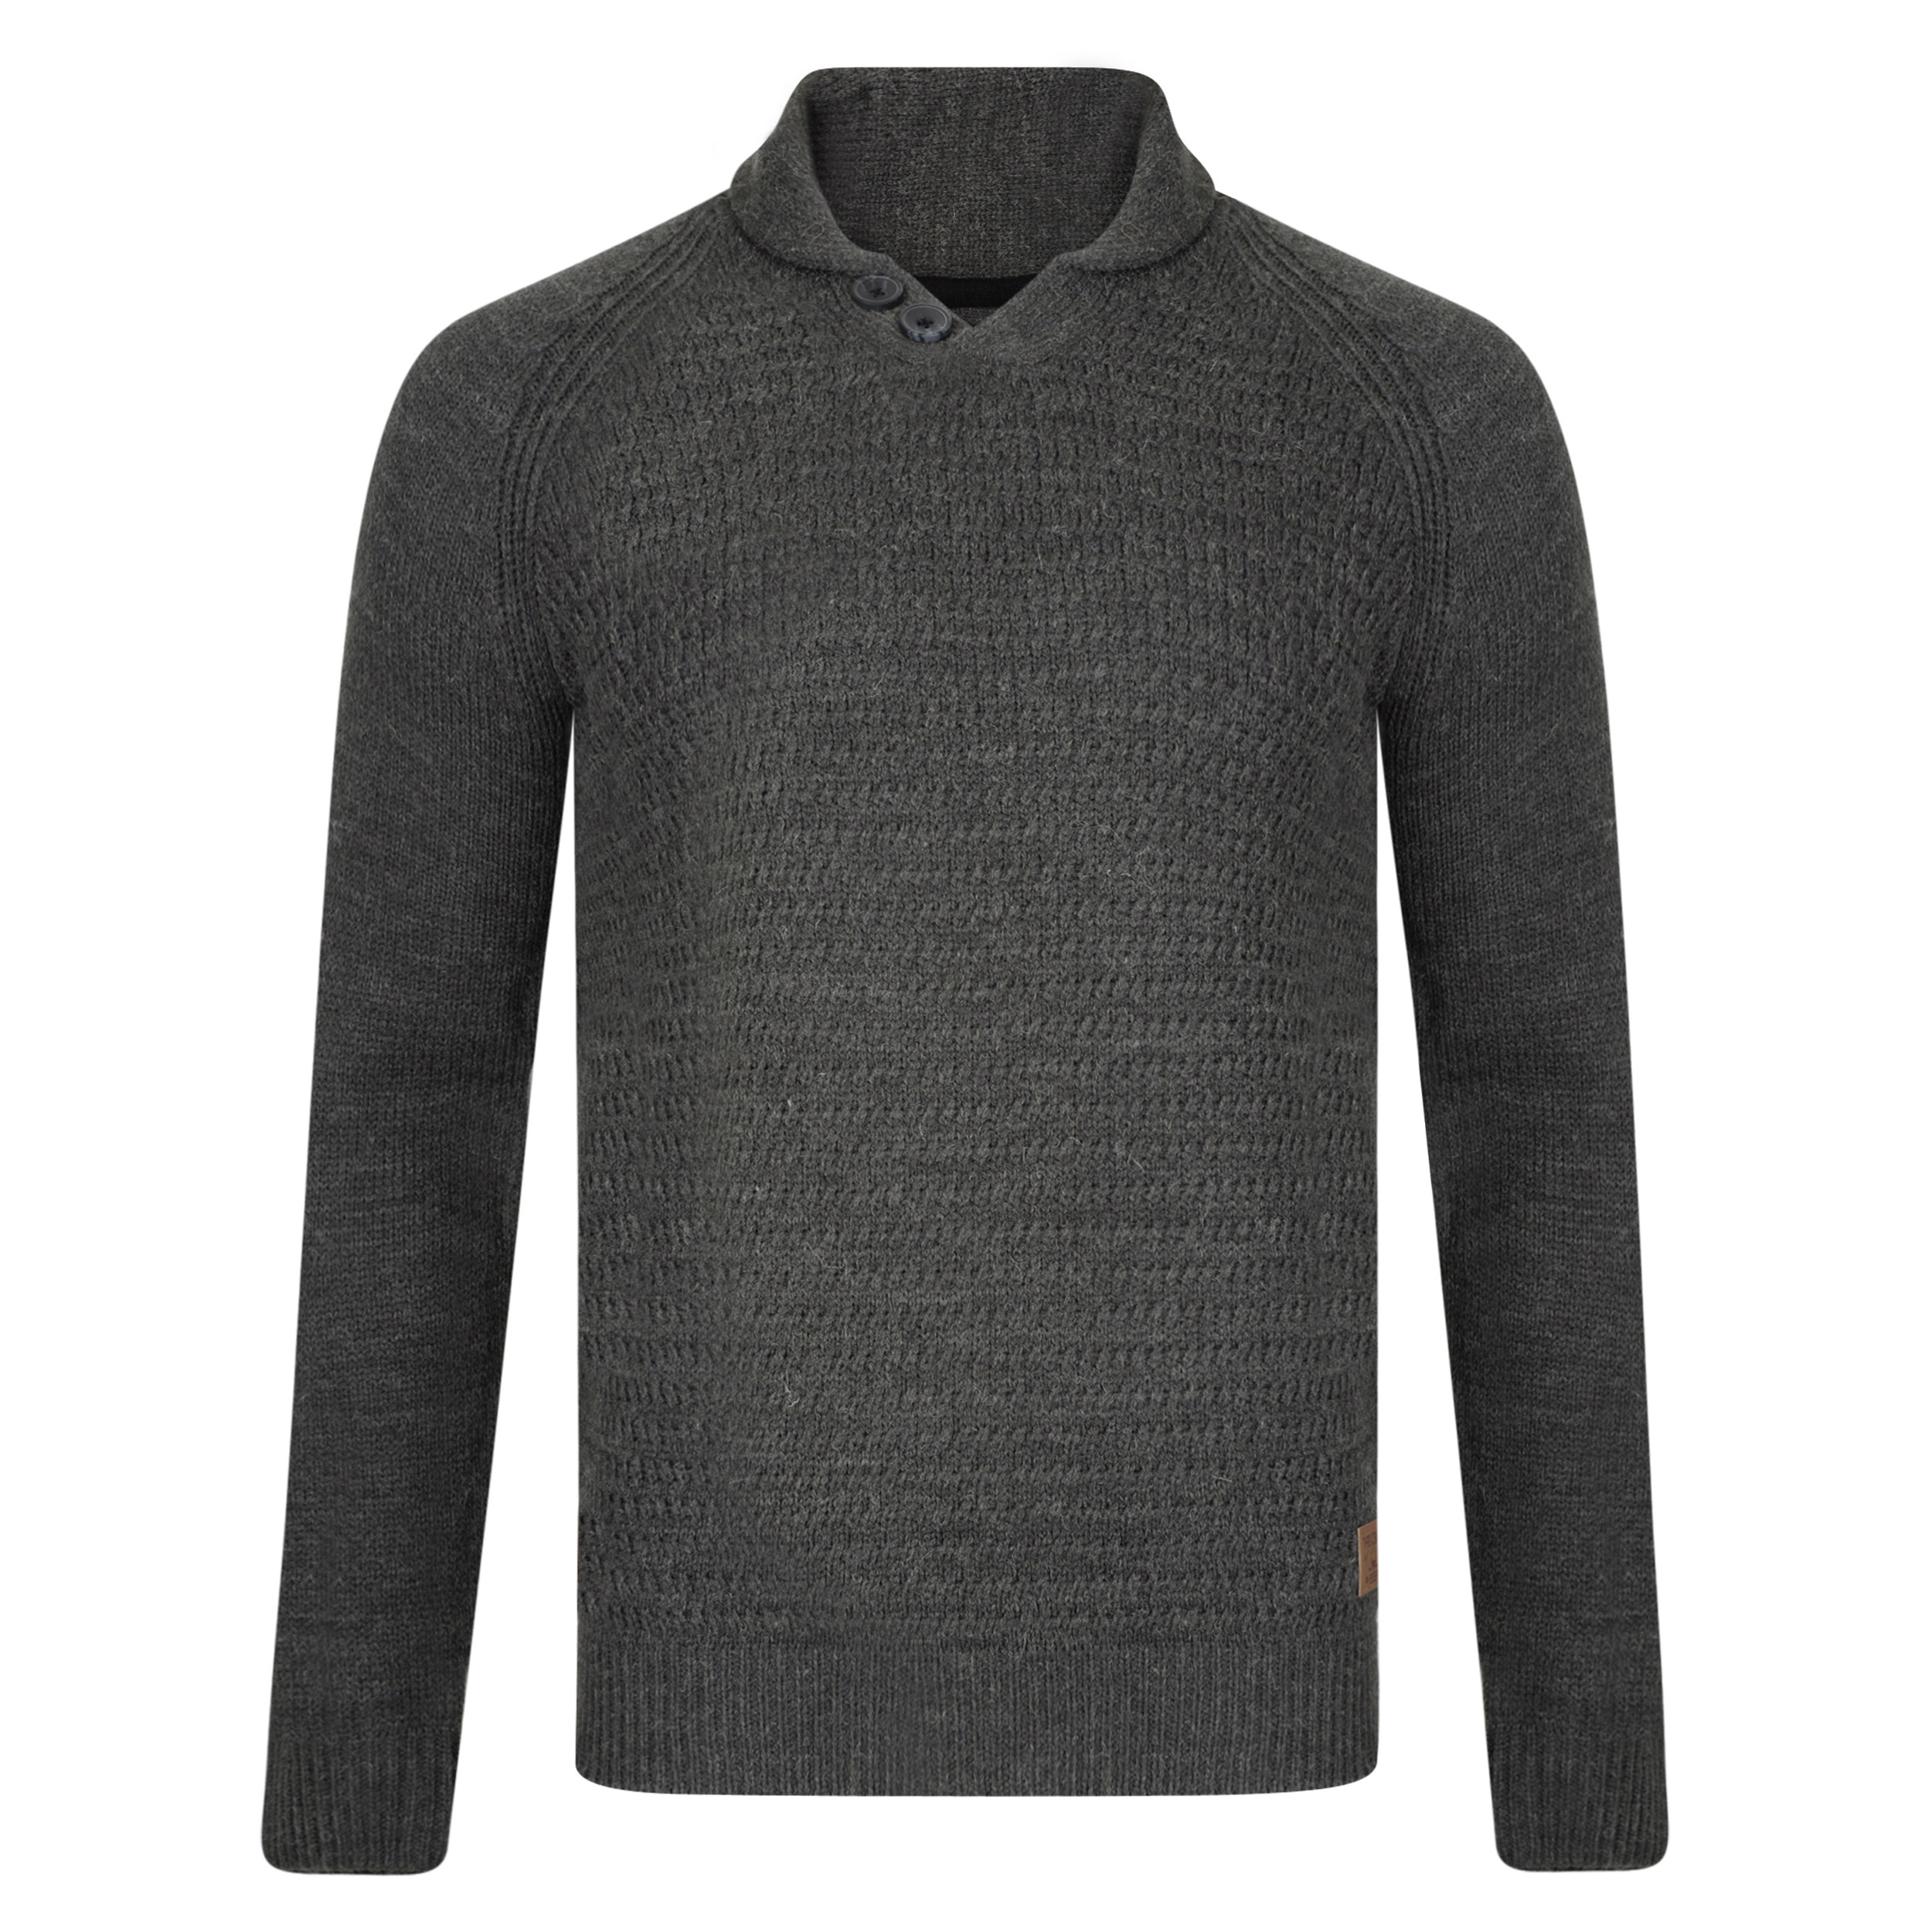 312ad64e3d3 Threadbare Romney Shawl Neck Wool Blend Jumper Charcoal Marl